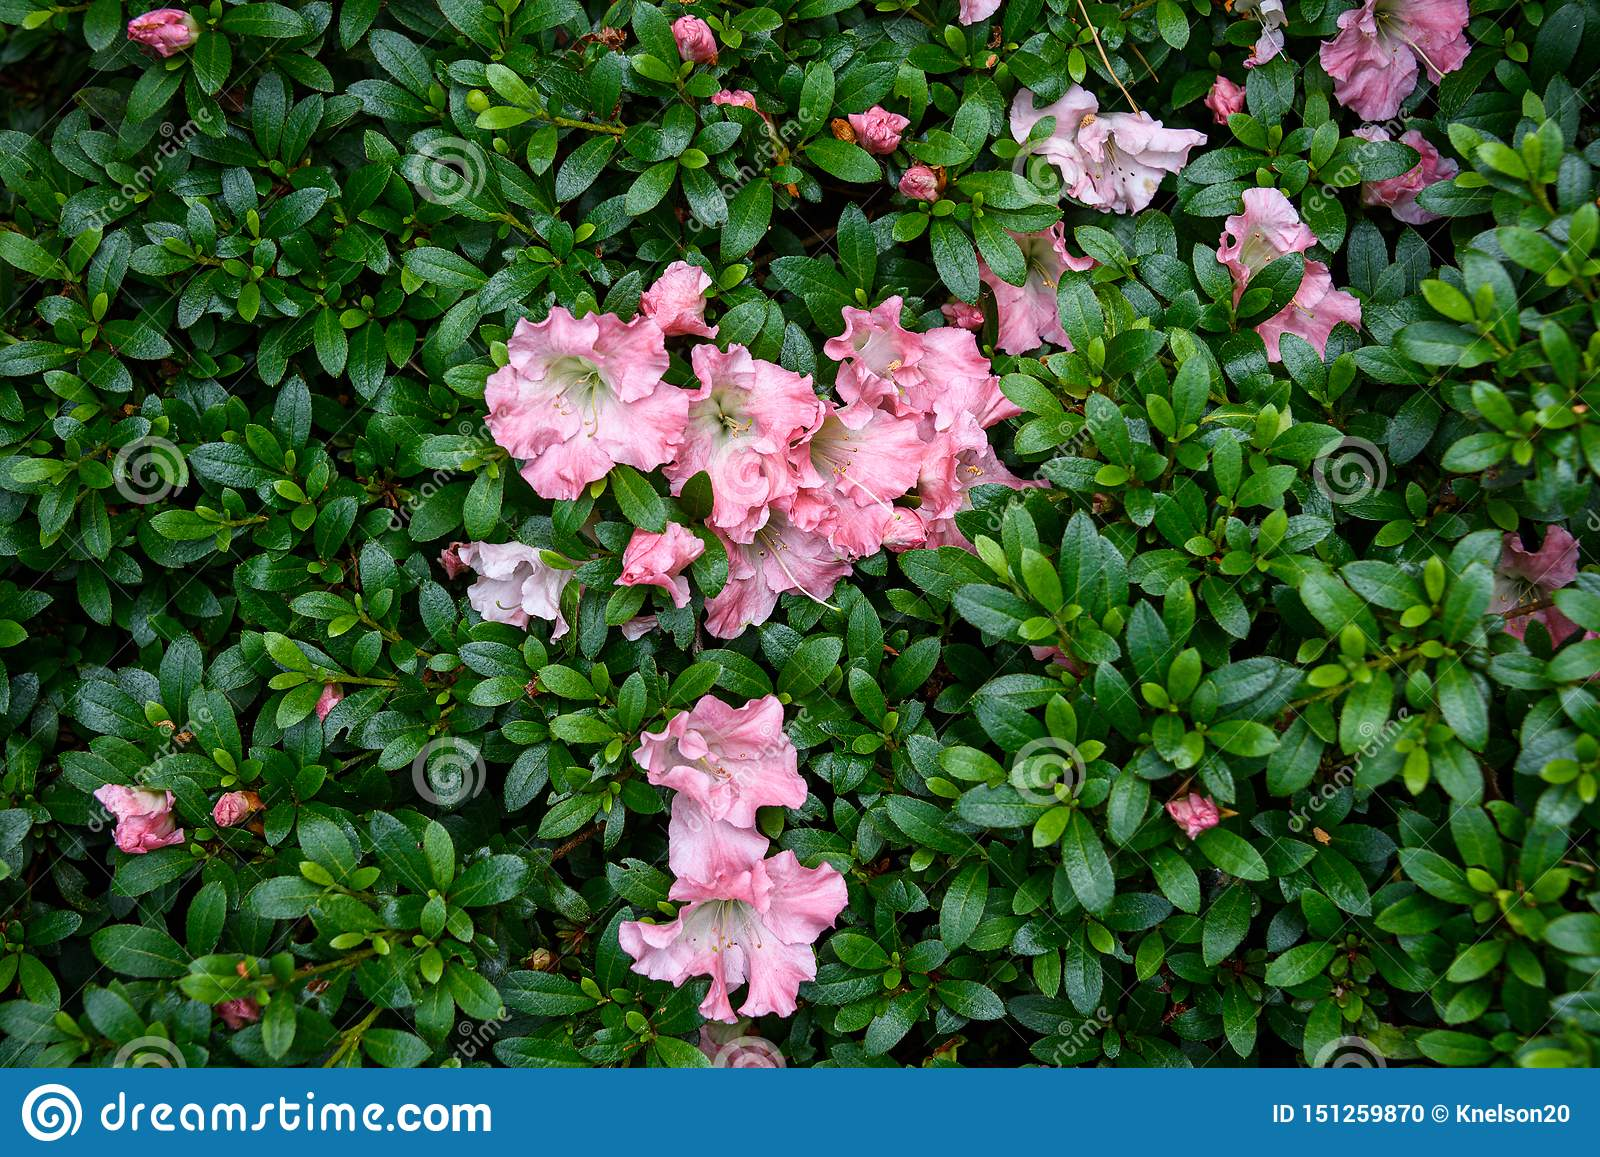 Nature Background Of Blooming Azalea Bush With Coral Colored Flowers Stock Photo Image Of Spring Green 151259870